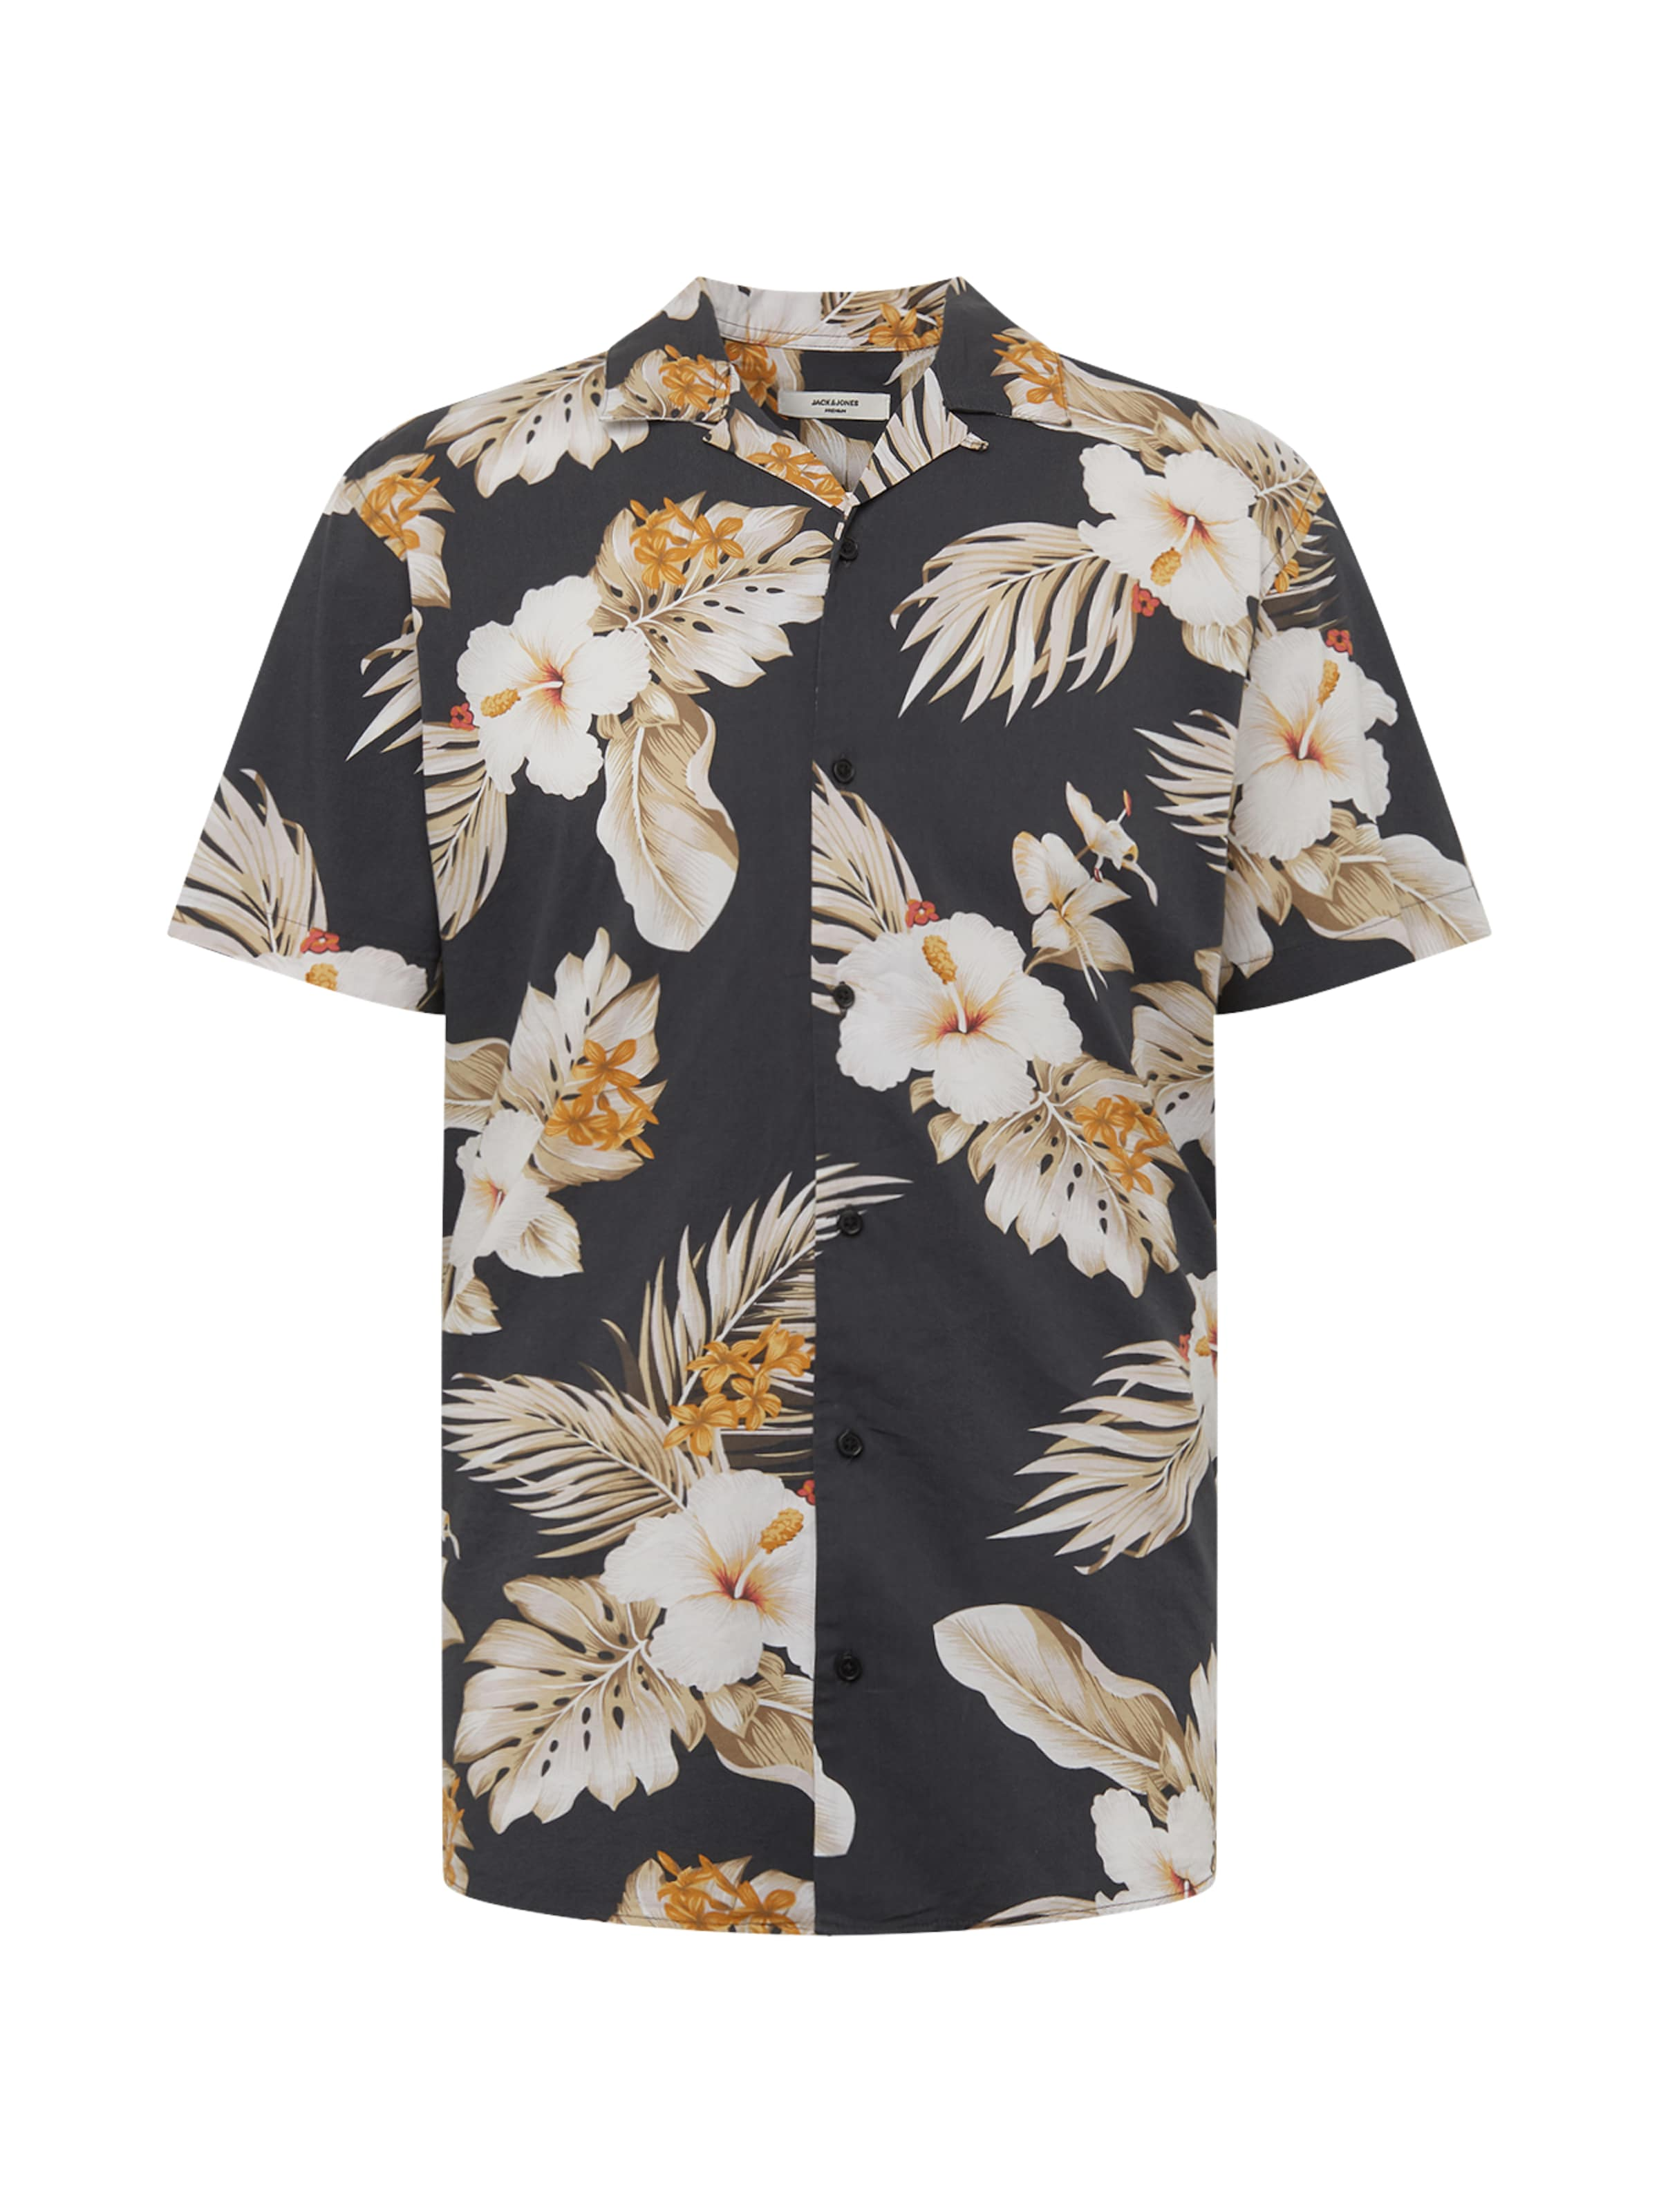 Jones Weiß Hemd 'jprhawaii Schwarz Resort Jackamp; S Aop' In BeigeOrange Shirt s EHW9ID2Y